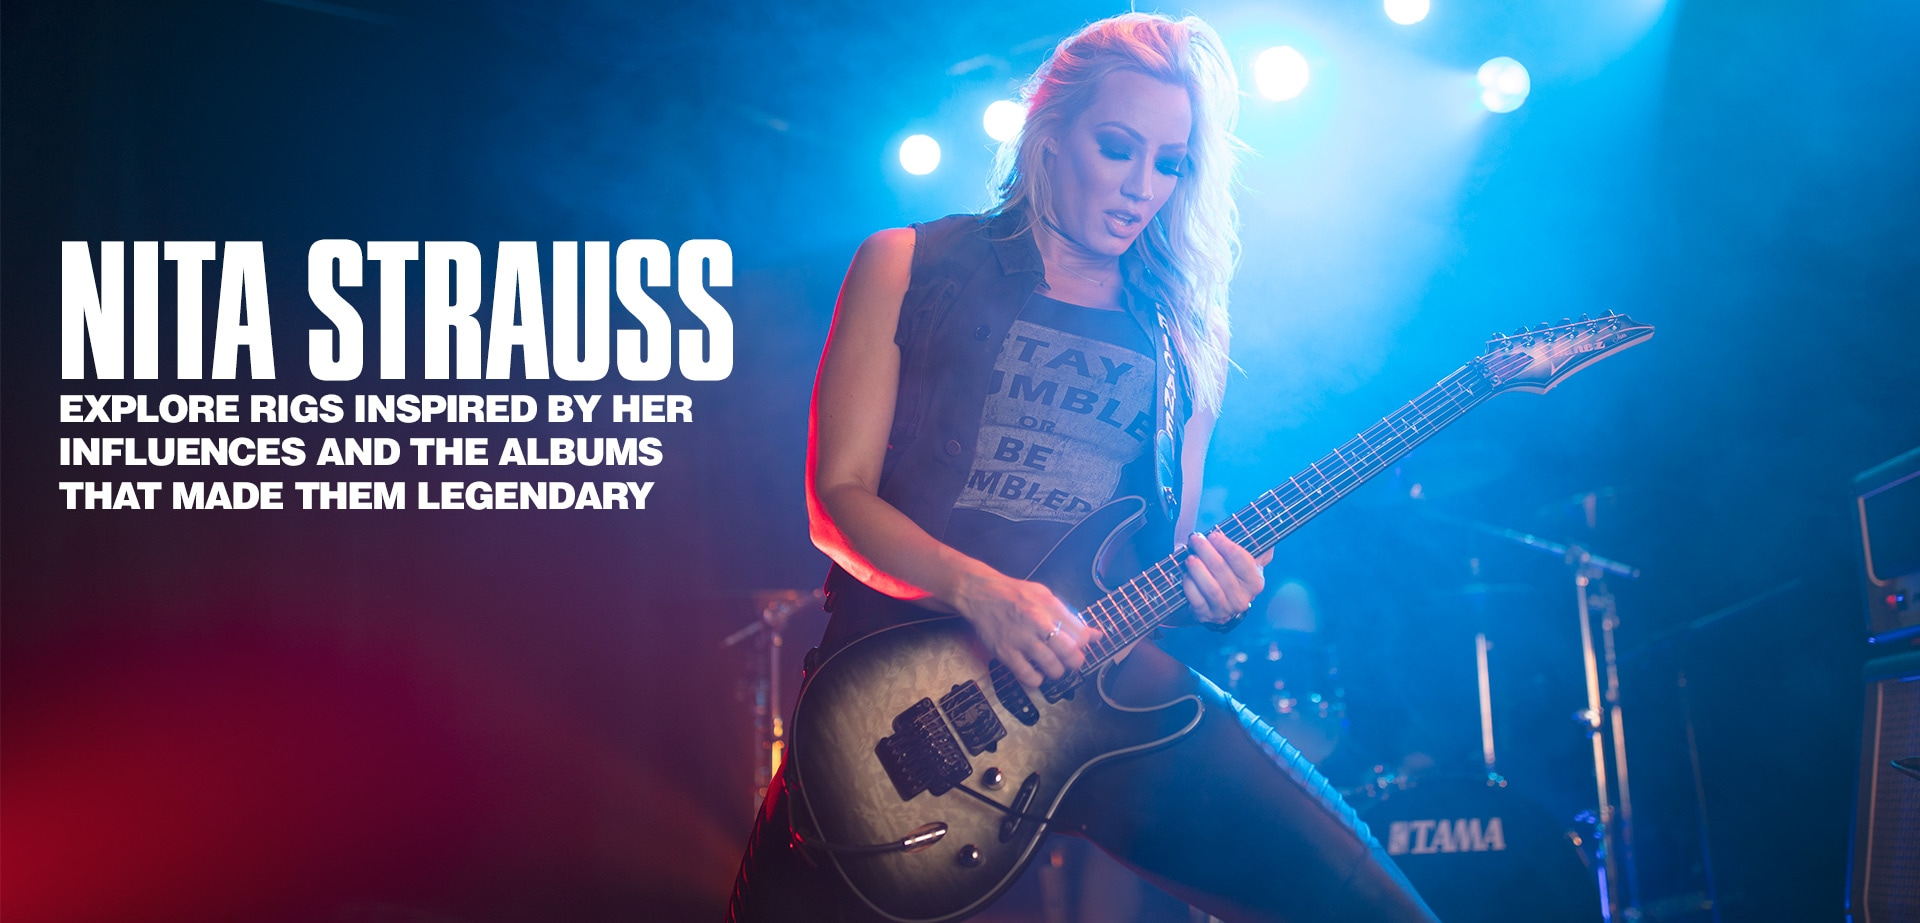 Nita Strauss explore rigs inspired by her influences and the albums that made them legendary.